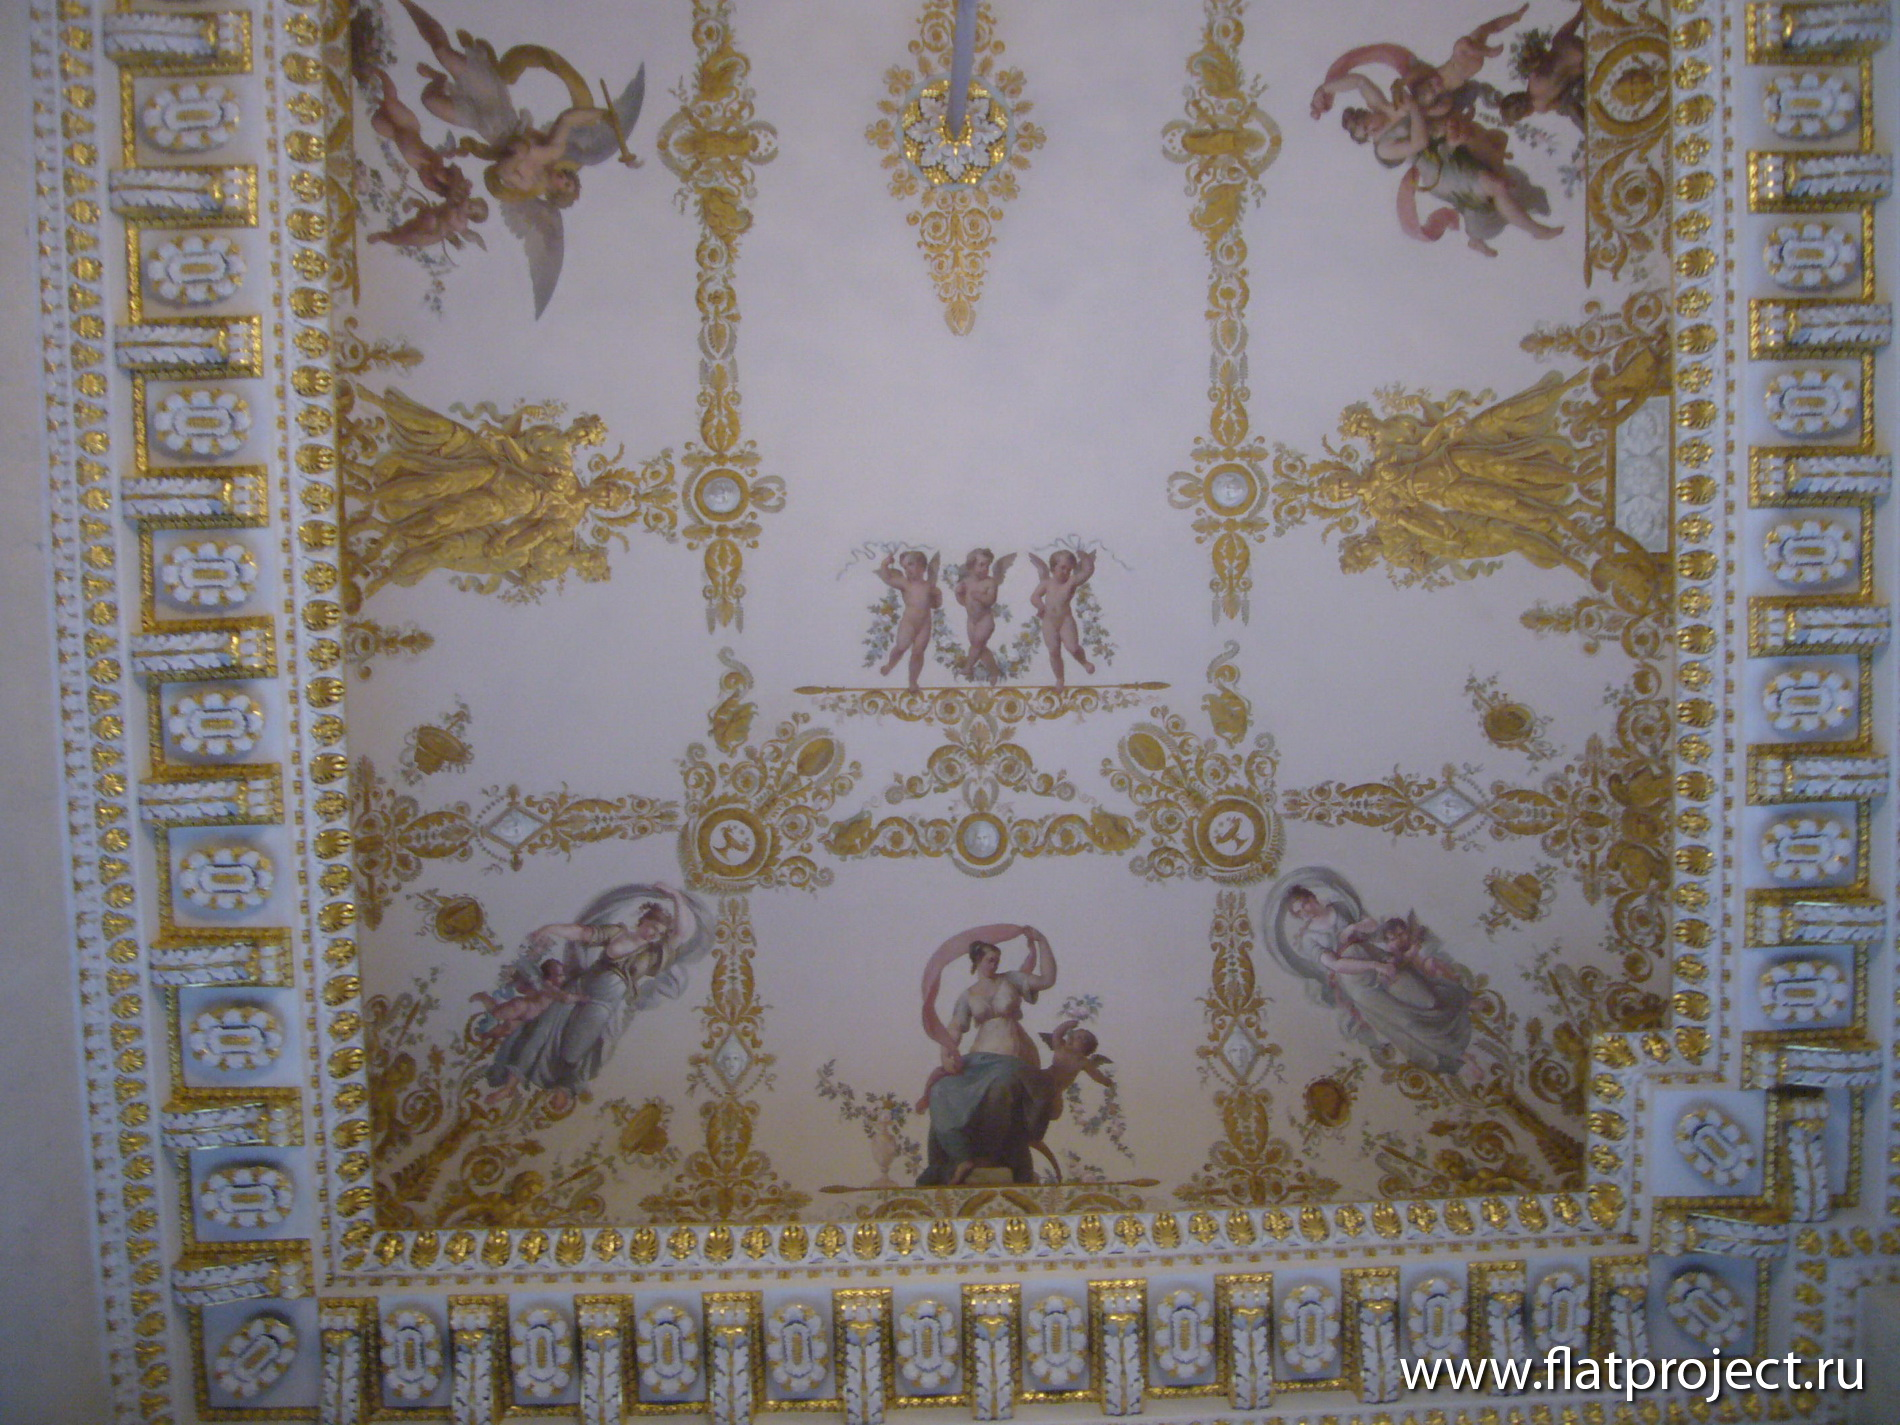 The State Russian museum interiors – photo 111